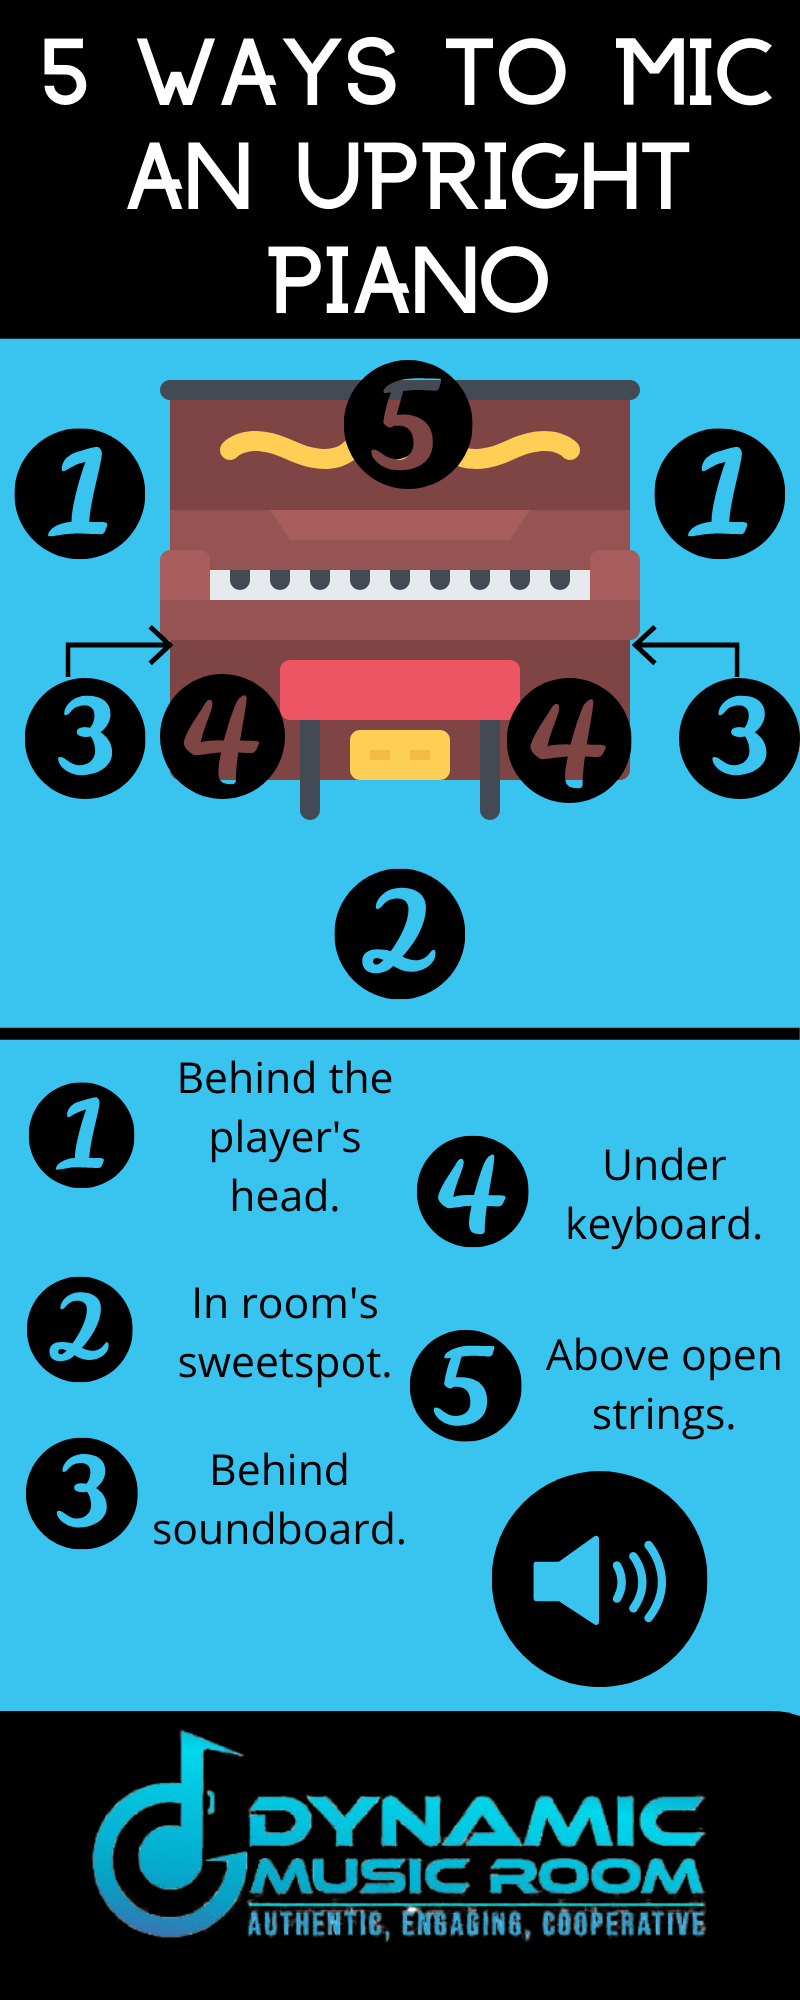 image 5 ways to mic an upright piano